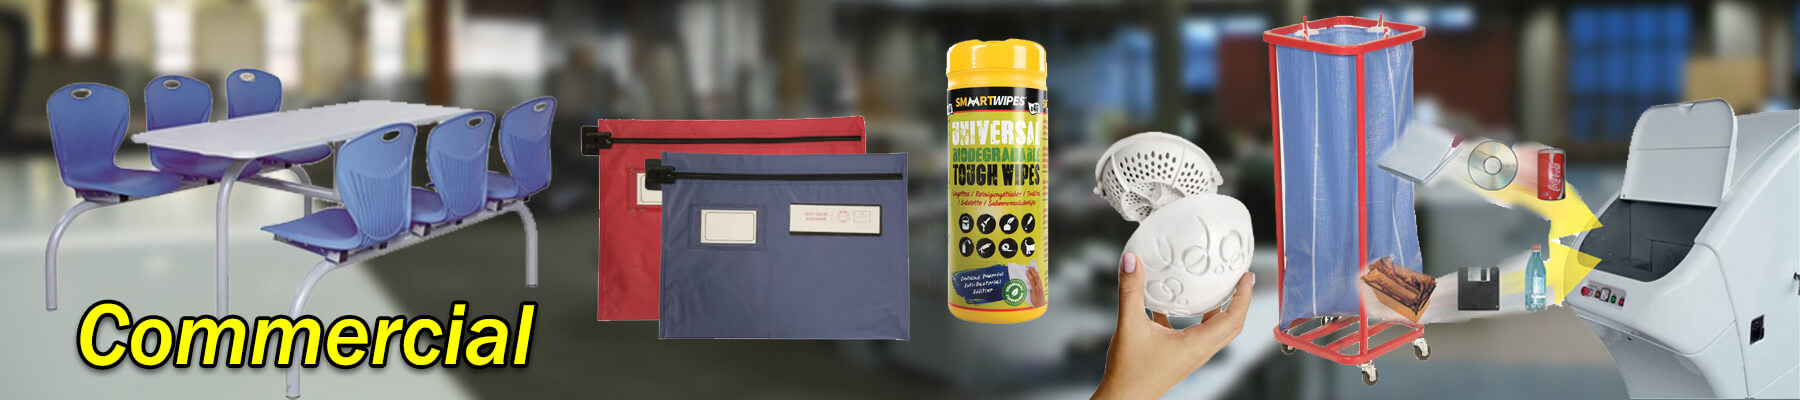 Commercial & Office Products